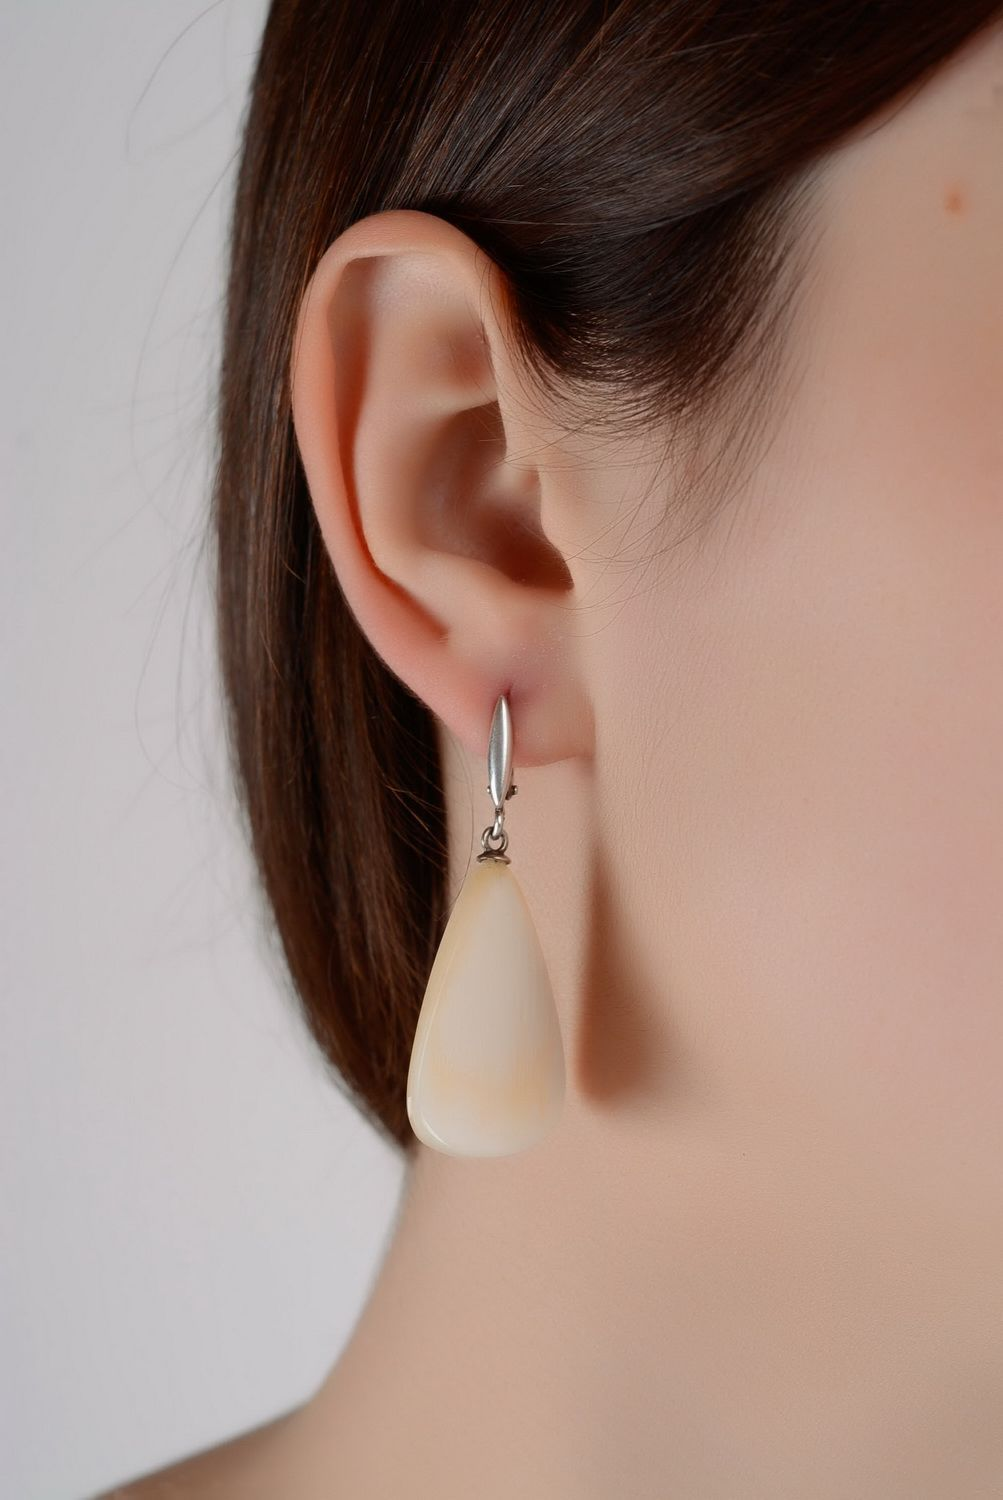 dangle earrings Silver earrings with a natural horn